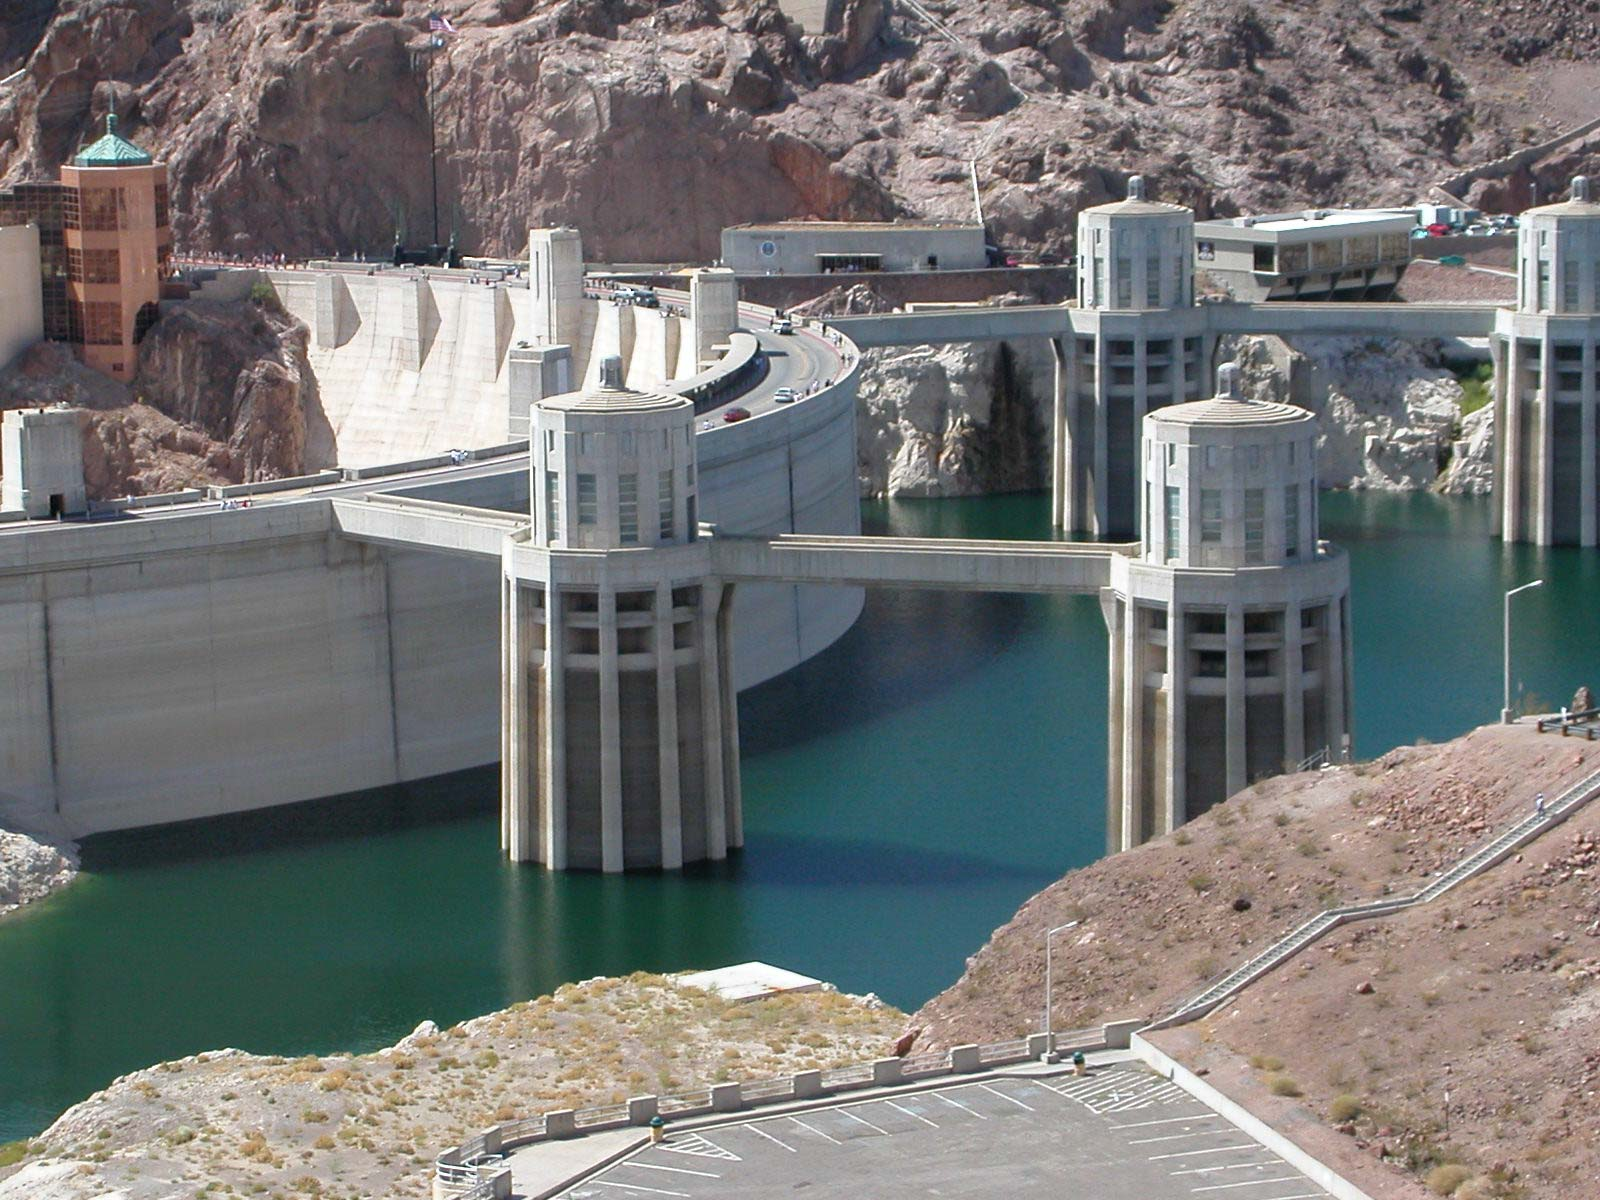 things to do in nevada:visit hoover dam